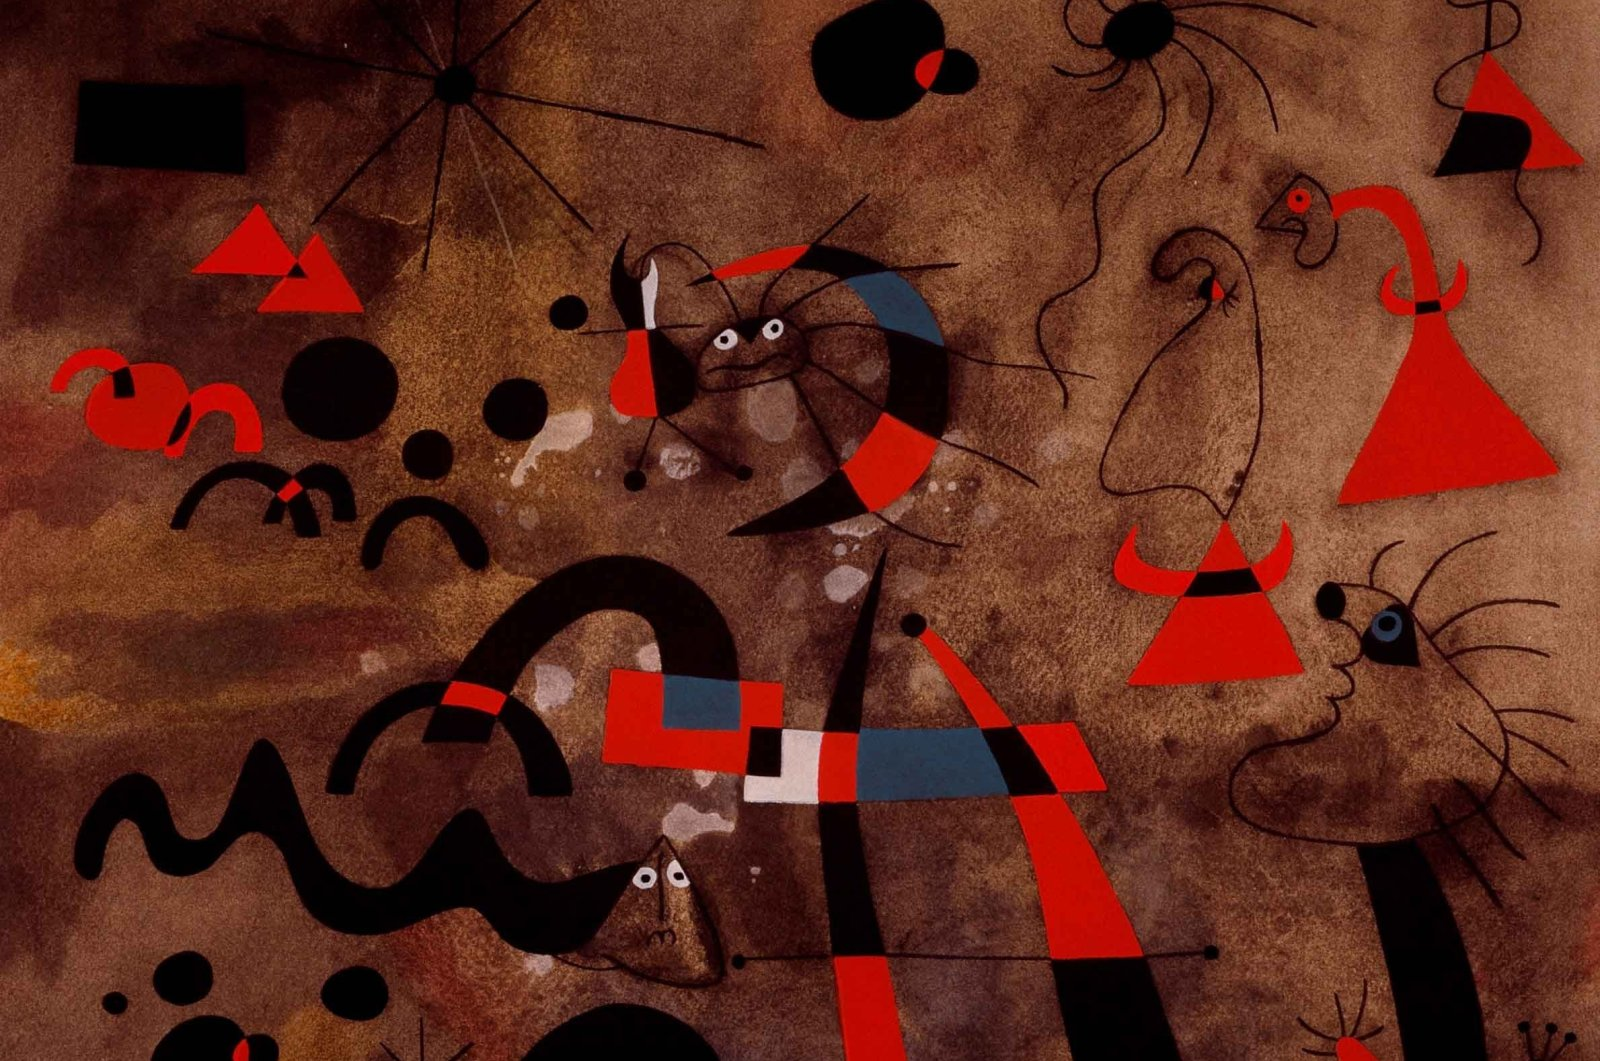 """Joan Miro, """"The Escape Ladder,"""" 1959, 35.8 by 43.3 centimeters. (Courtesy of SSM)"""